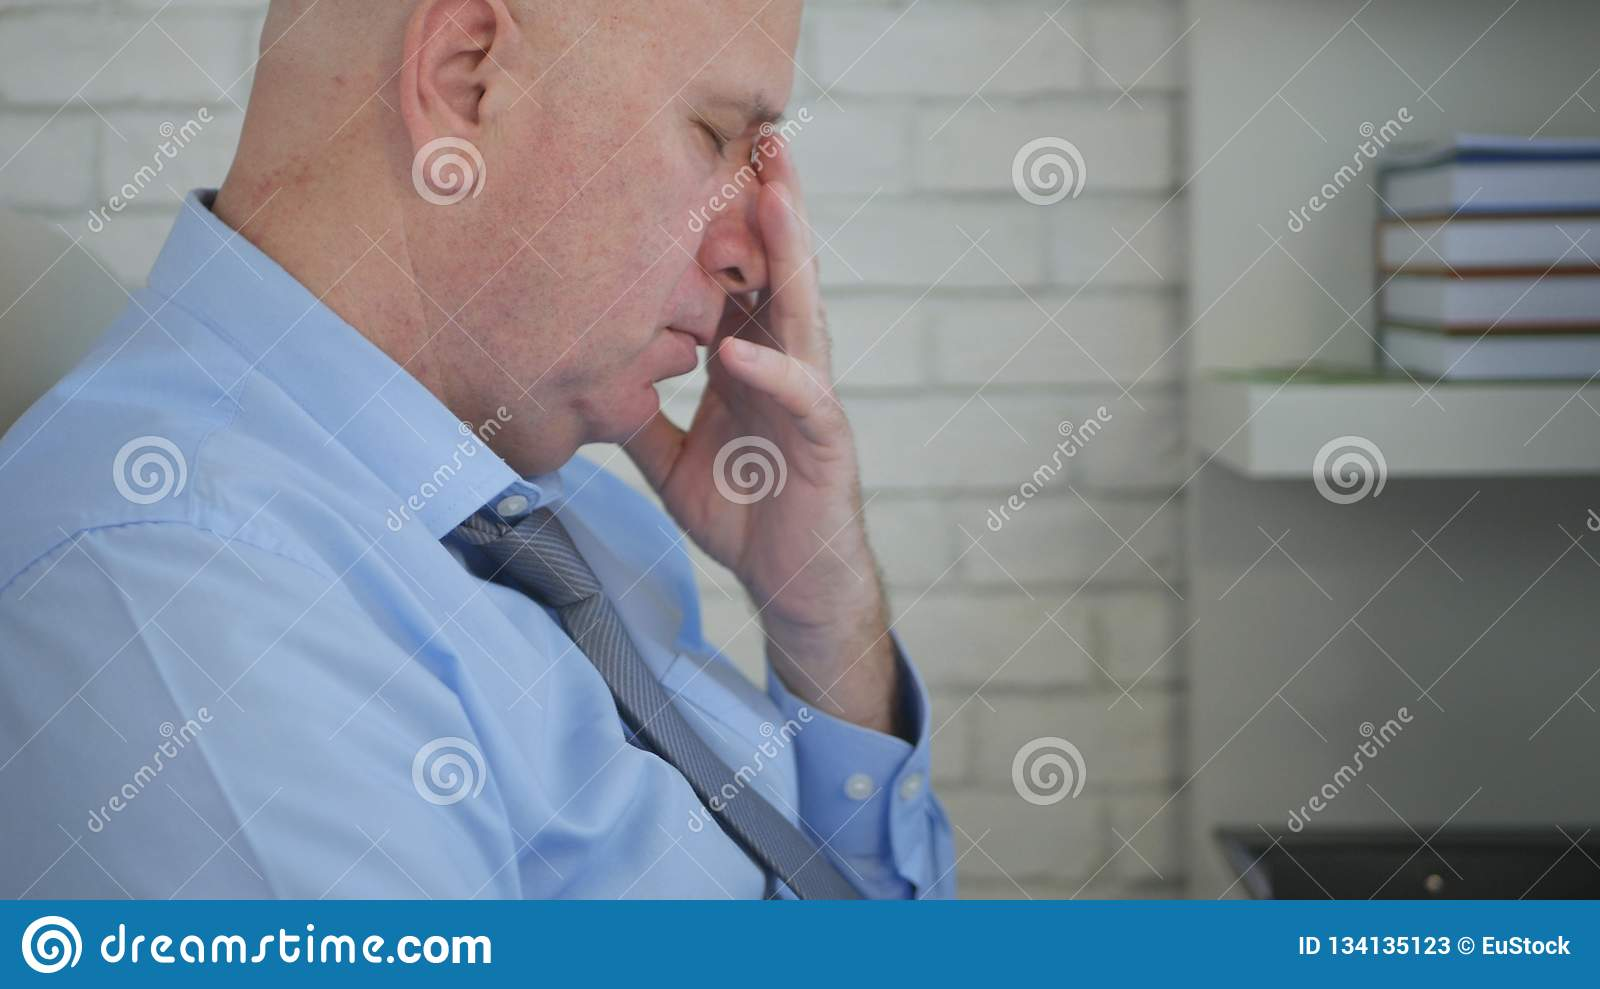 Worried Businessman In Office Room Image Thinking Troubled